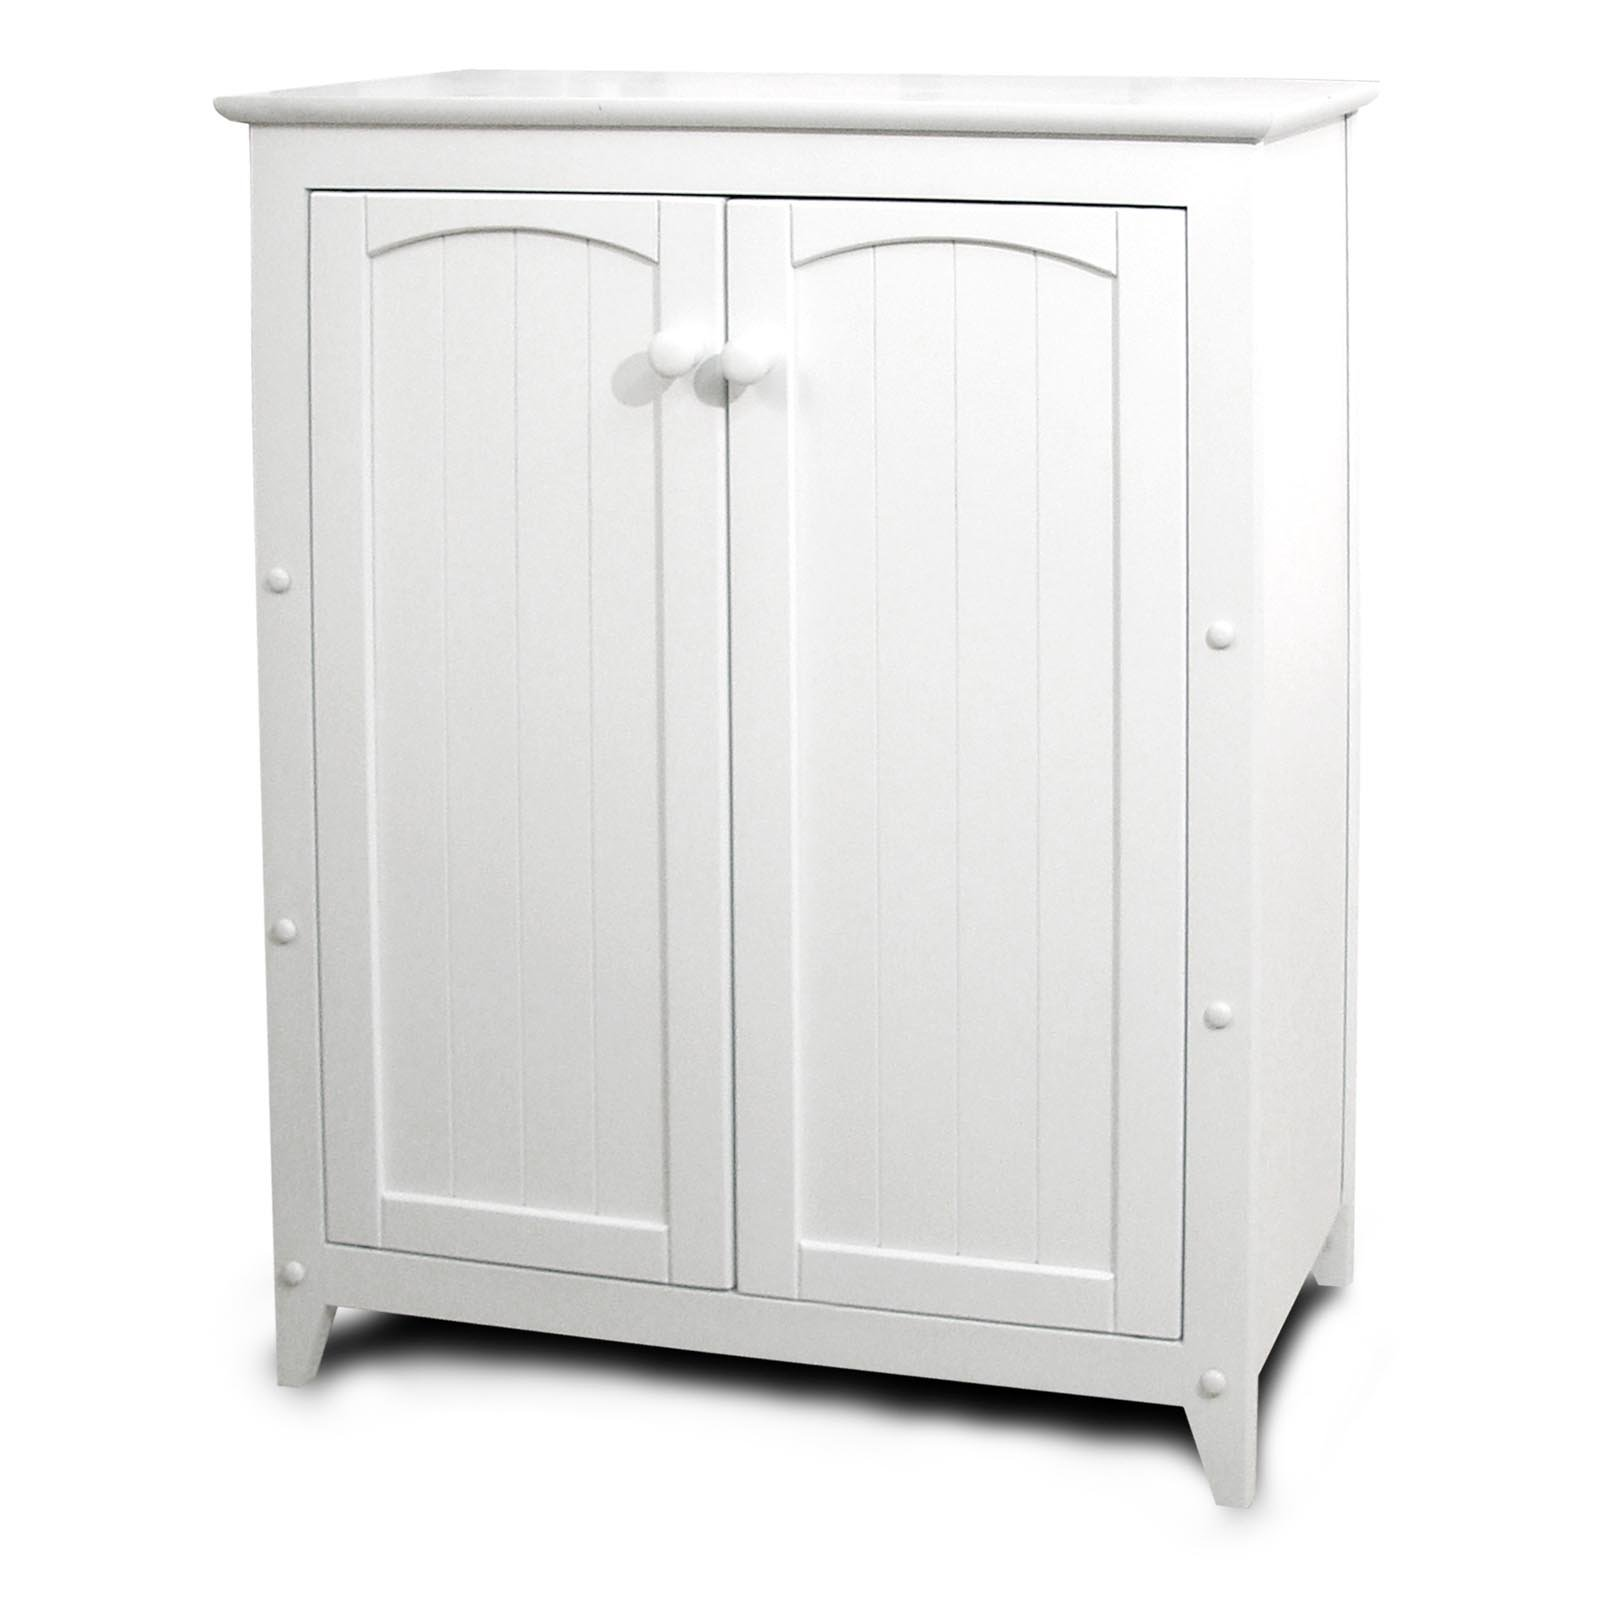 Catskill White All-Purpose Kitchen Storage Cabinet with Double Doors  sc 1 st  Walmart & Catskill White All-Purpose Kitchen Storage Cabinet with Double Doors ...